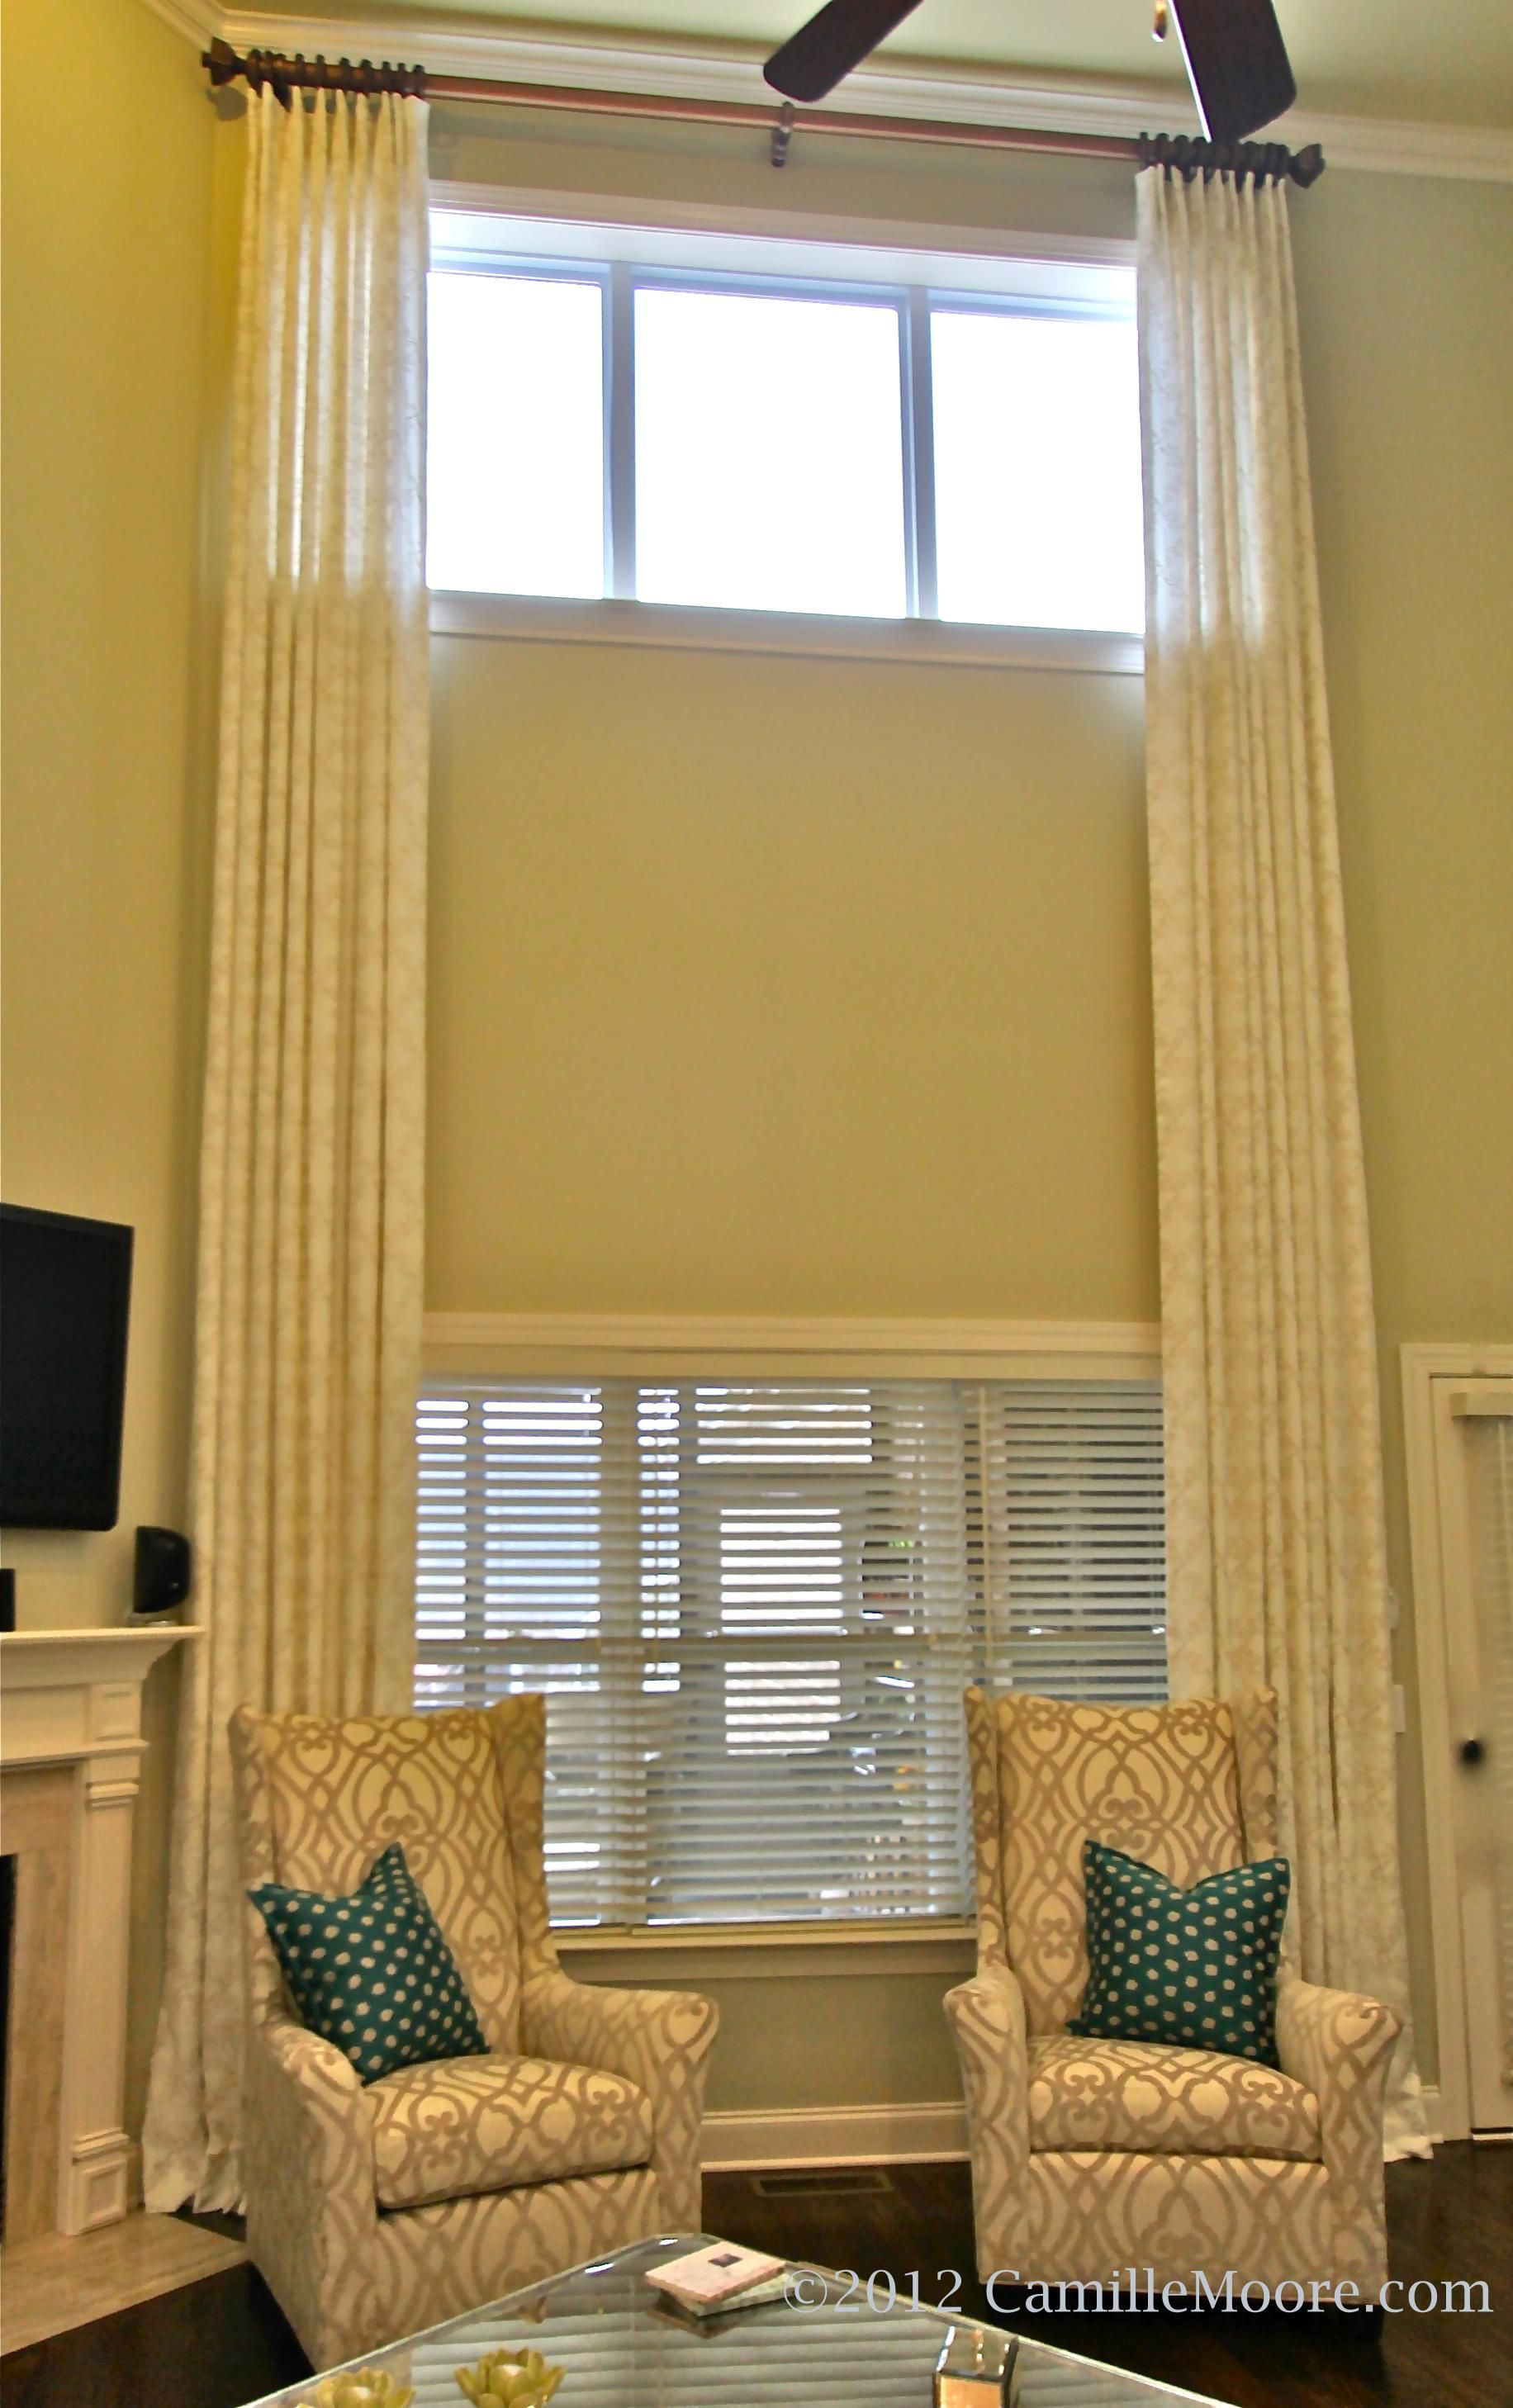 two on elegant ideas arched curtains window pinterest new win story curtain treatments custom saravi blinds